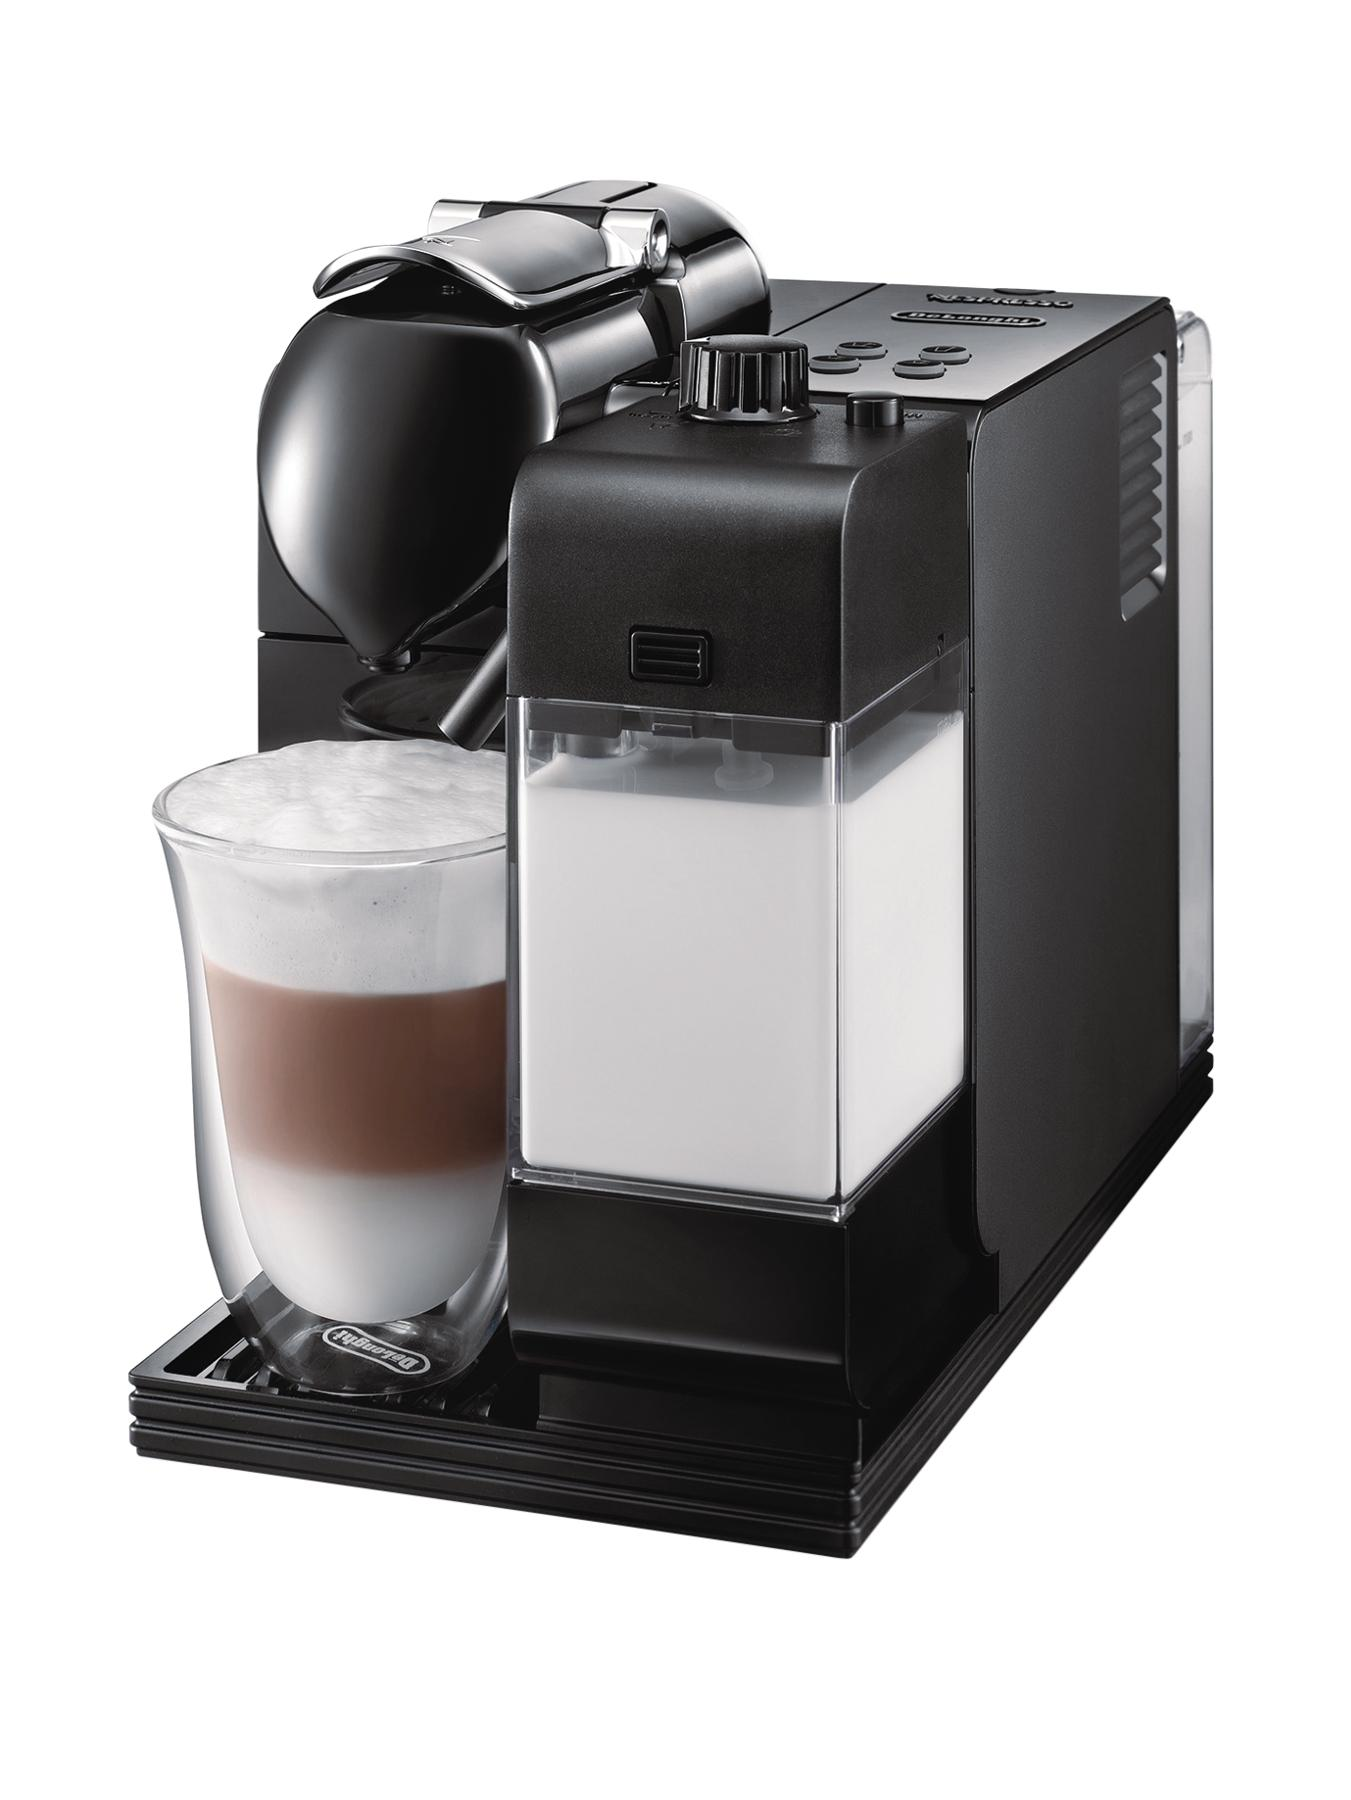 EN520B Nespresso Lattissima Coffee Machine - Black